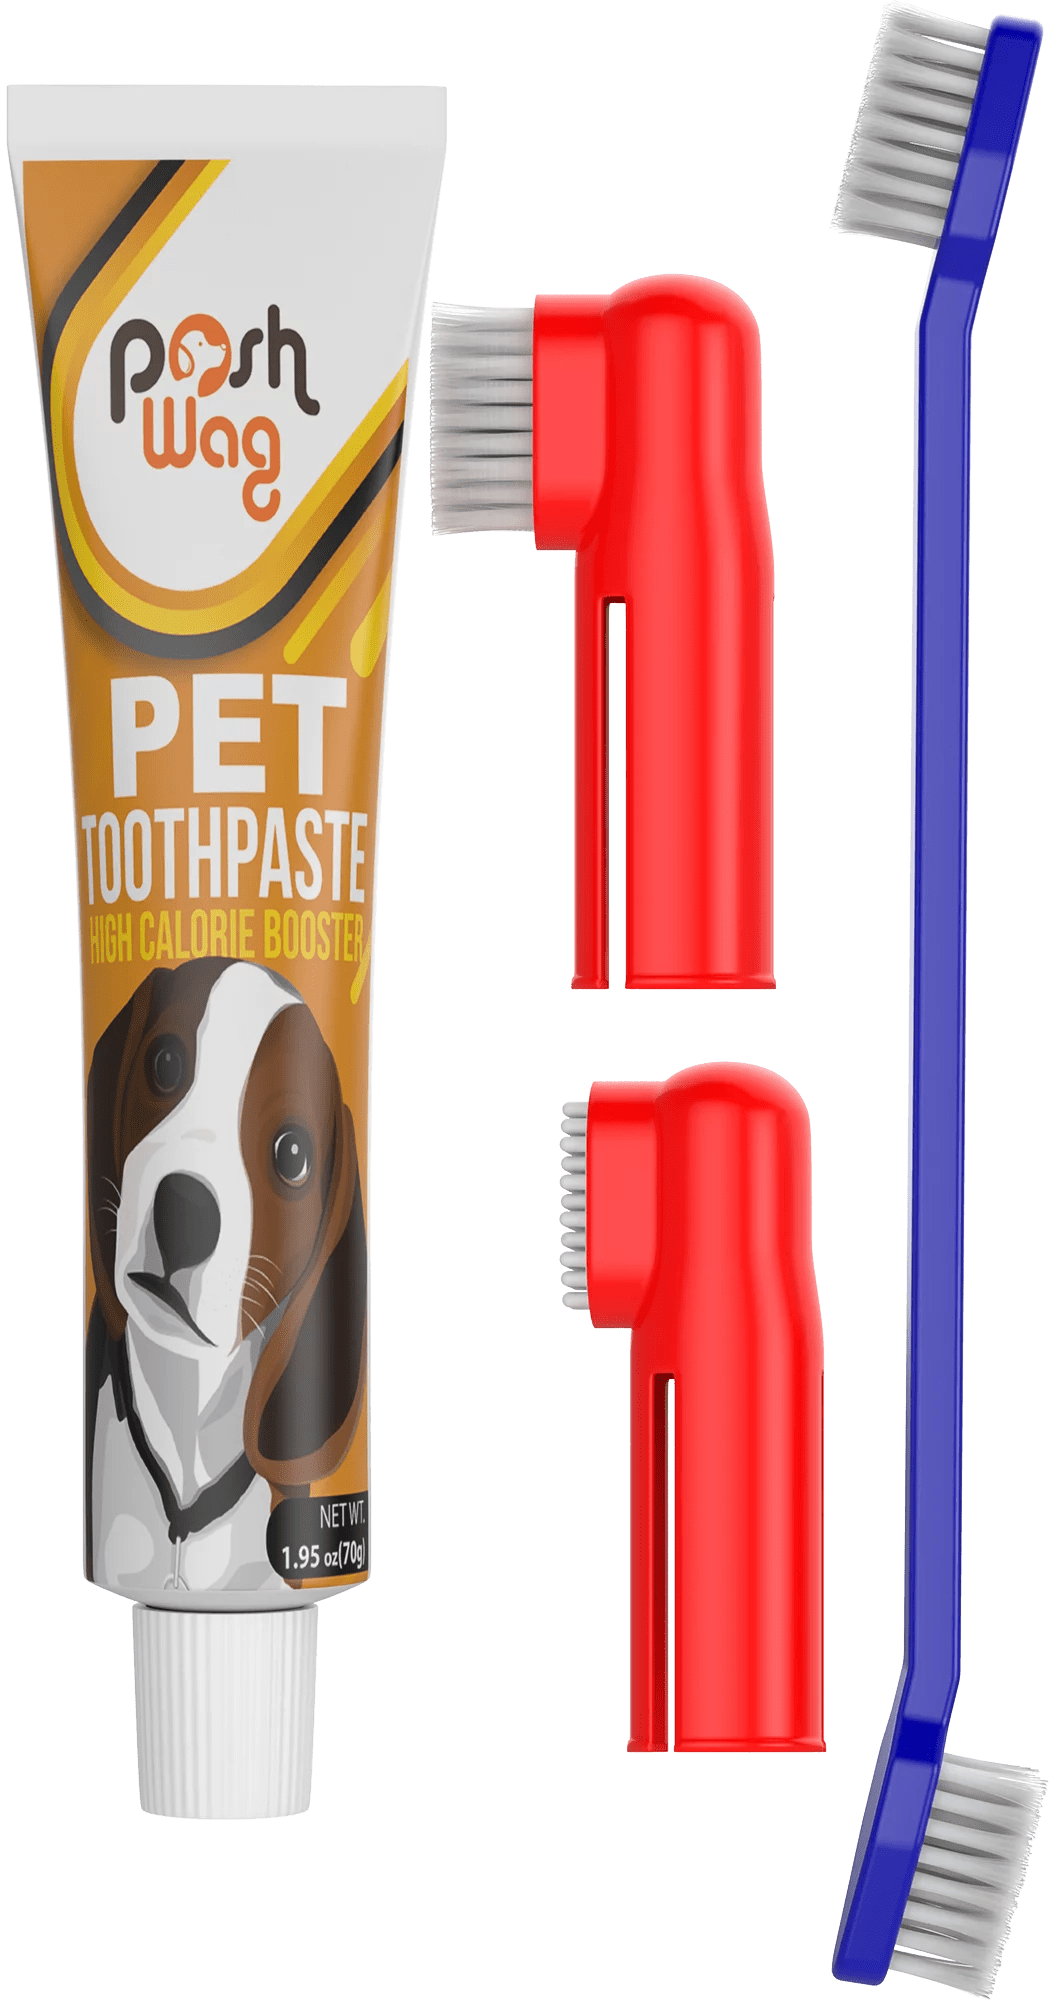 soft silicone double sided dog toothbrush with long curved handle 1 95oz